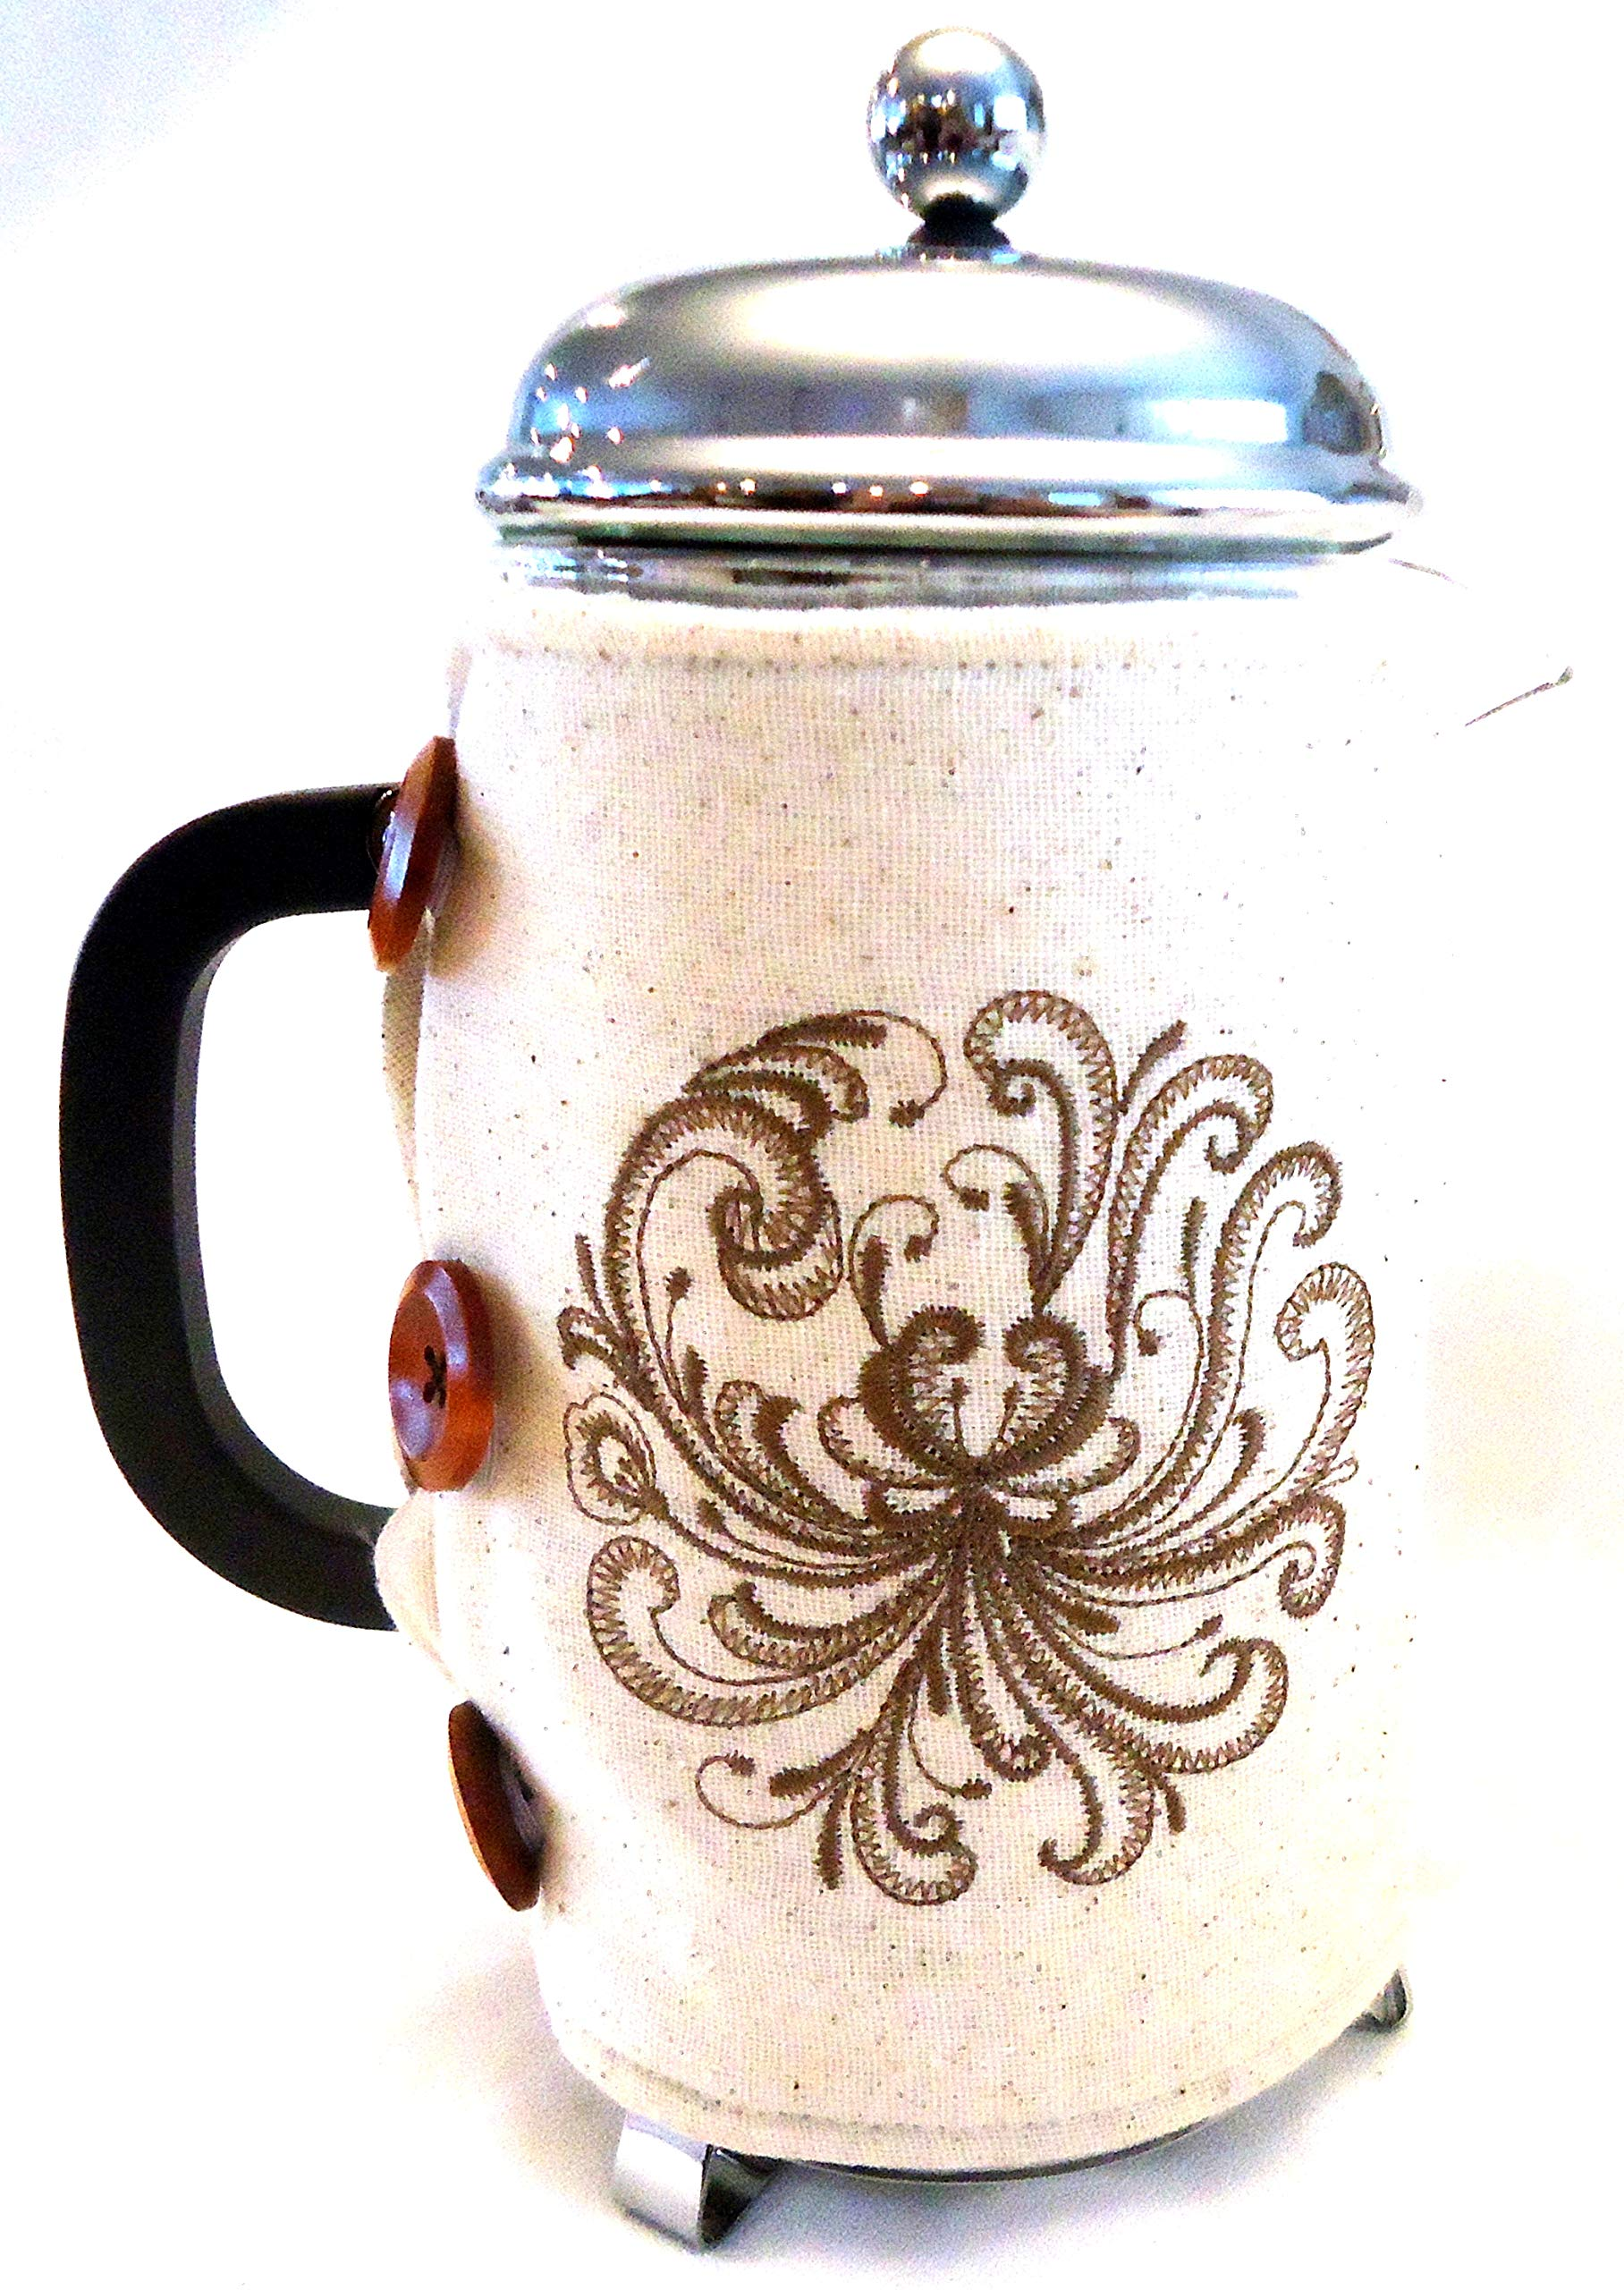 Integrity Designs Scandinavian Rosemaling Embroidered French Press Cozy with Gift Card and Envelope by Integrity Designs